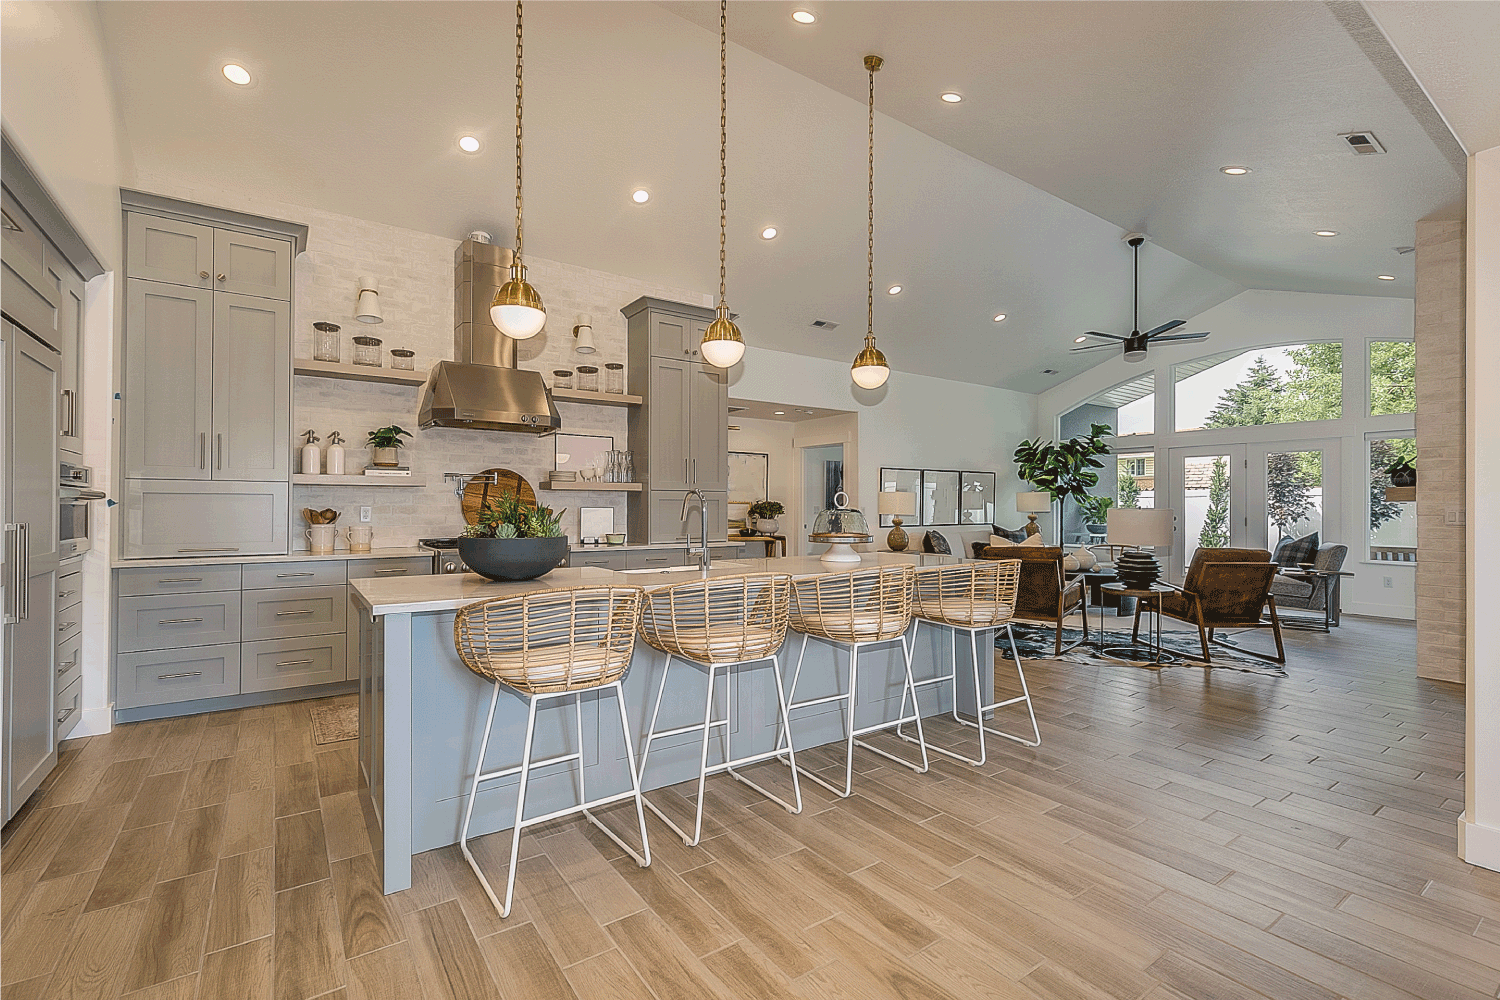 Vaulted ceiling allow pendant lights give huge open feel to custom kitchen